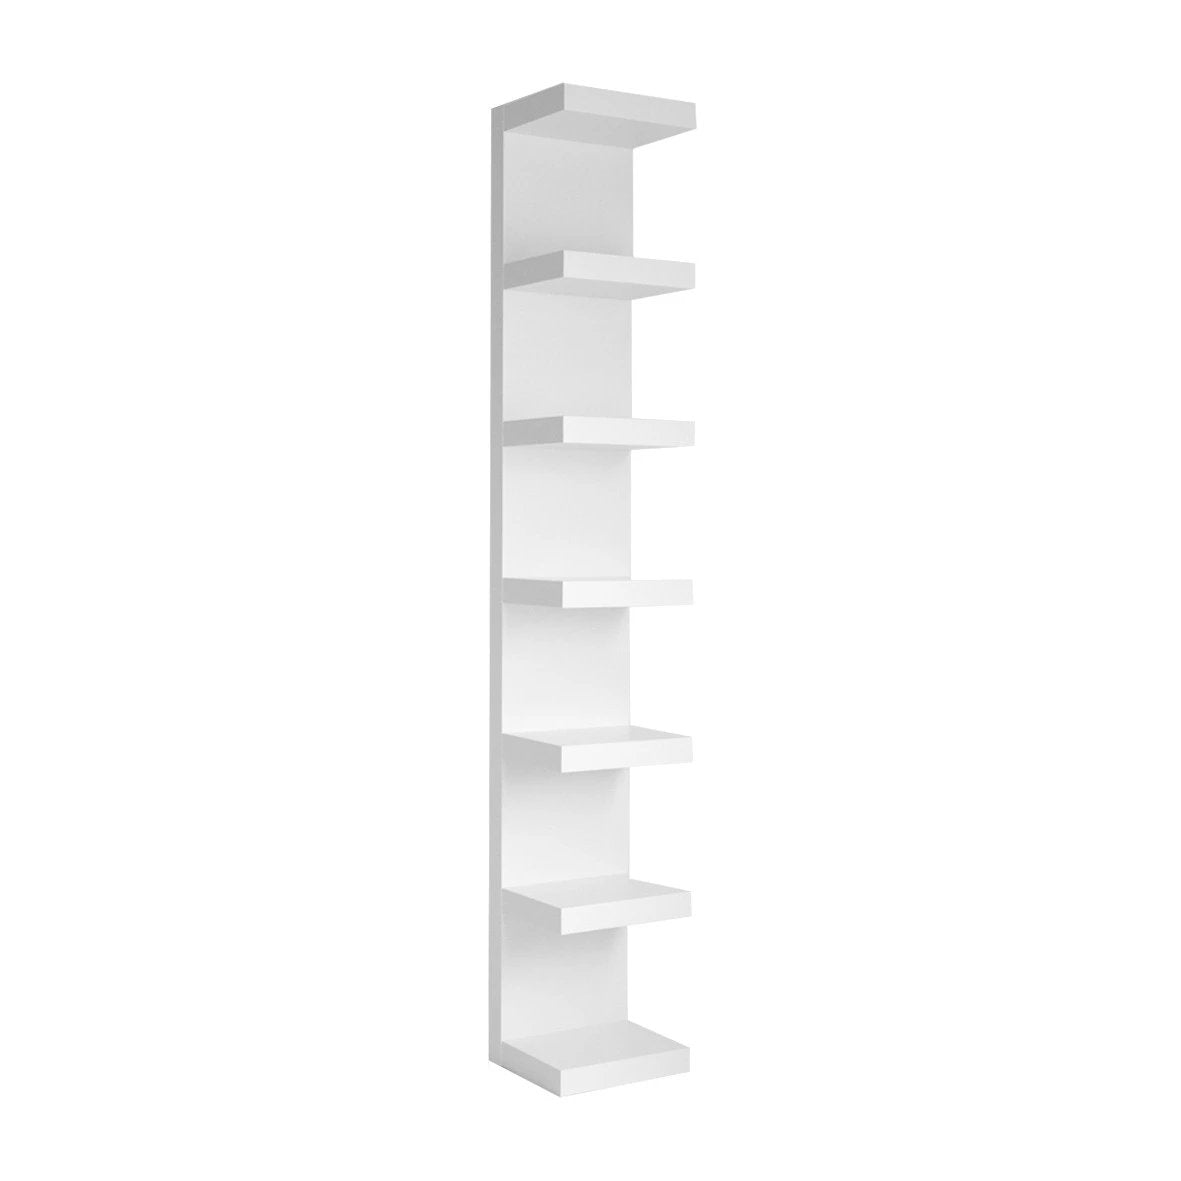 IKEA Lack Wall Shelf Unit, 30x190cm, White